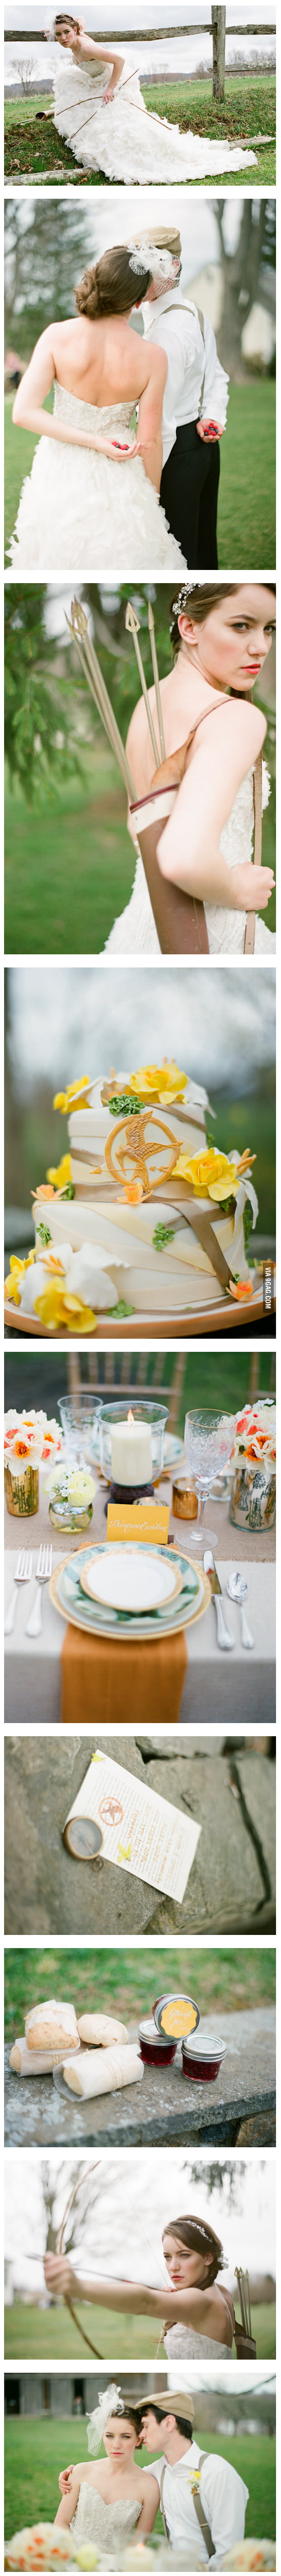 """The Hunger Games"" Themed Wedding"